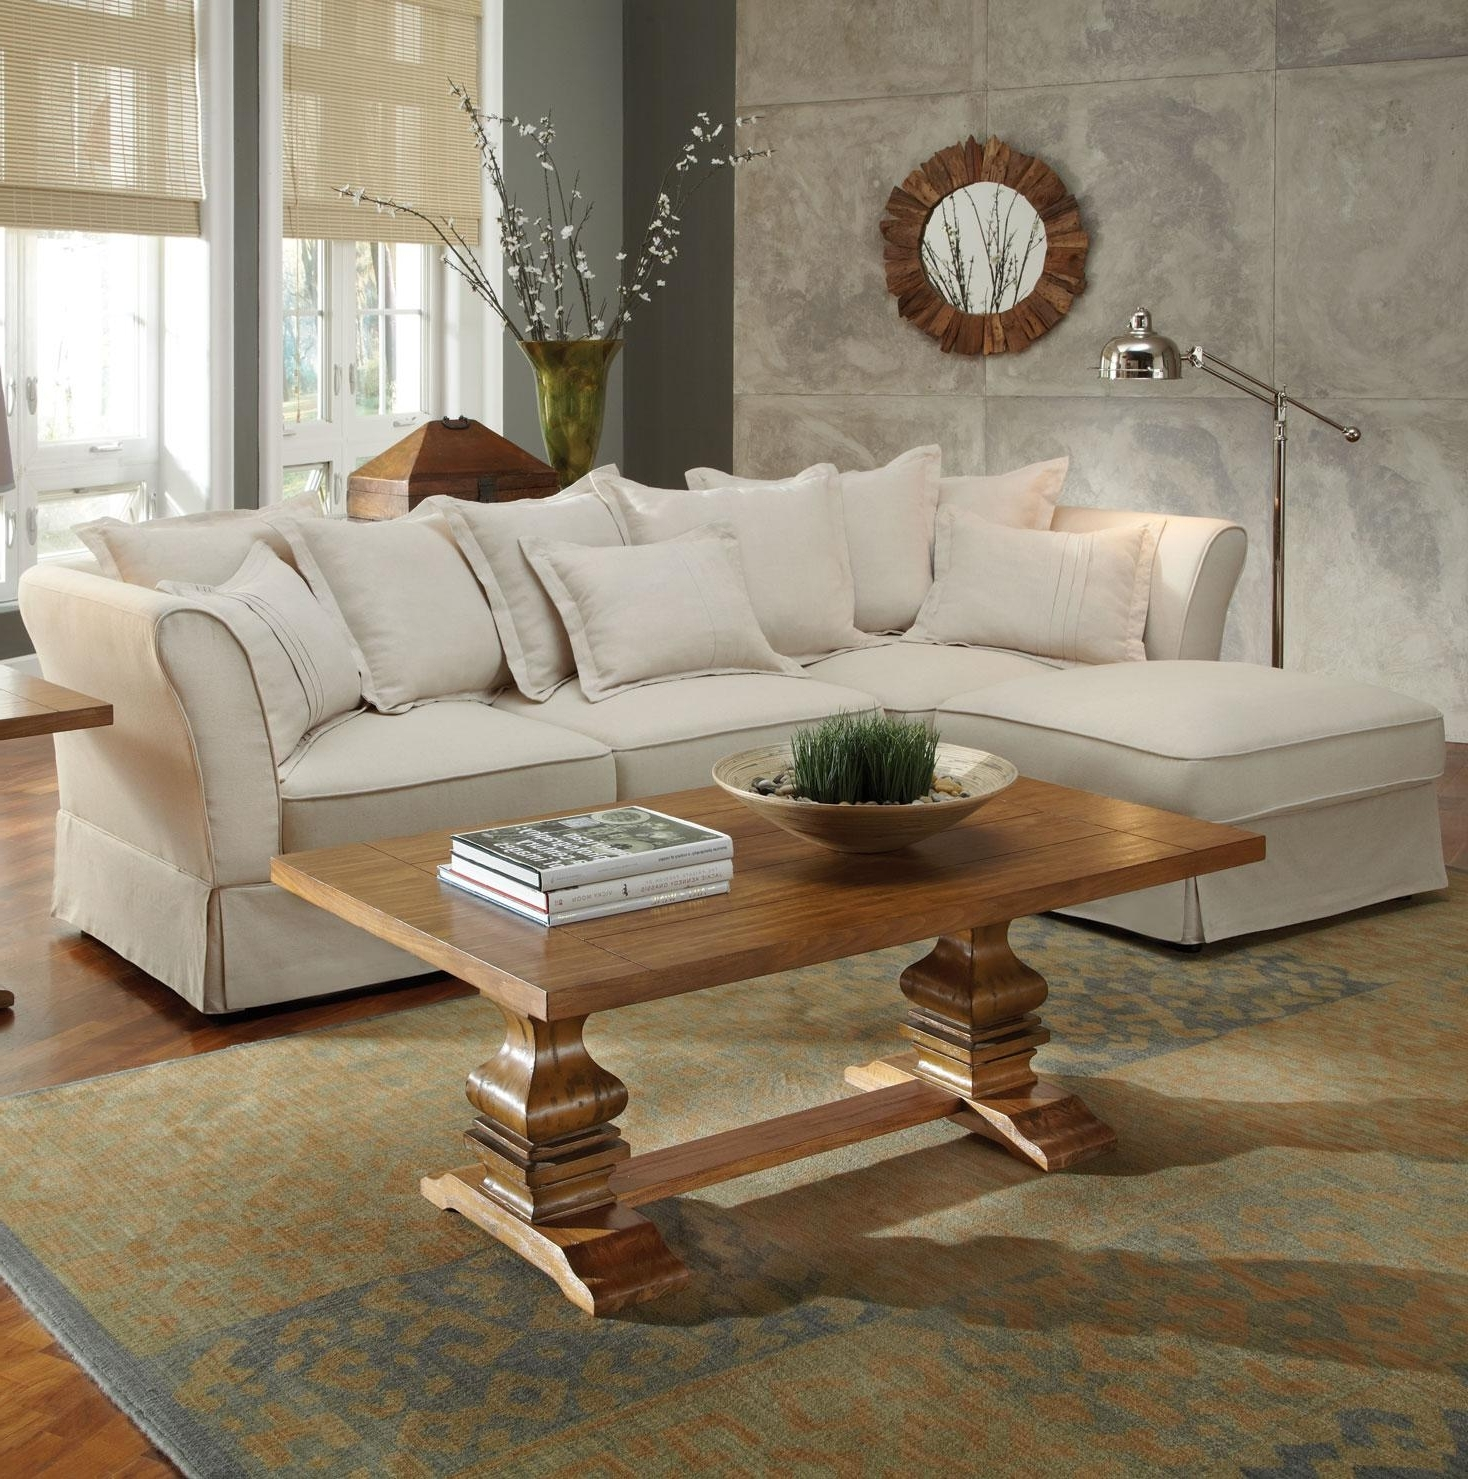 New Orleans Sectional Sofas Throughout Recent Design Furniture Stationary Living Rooms (View 8 of 15)